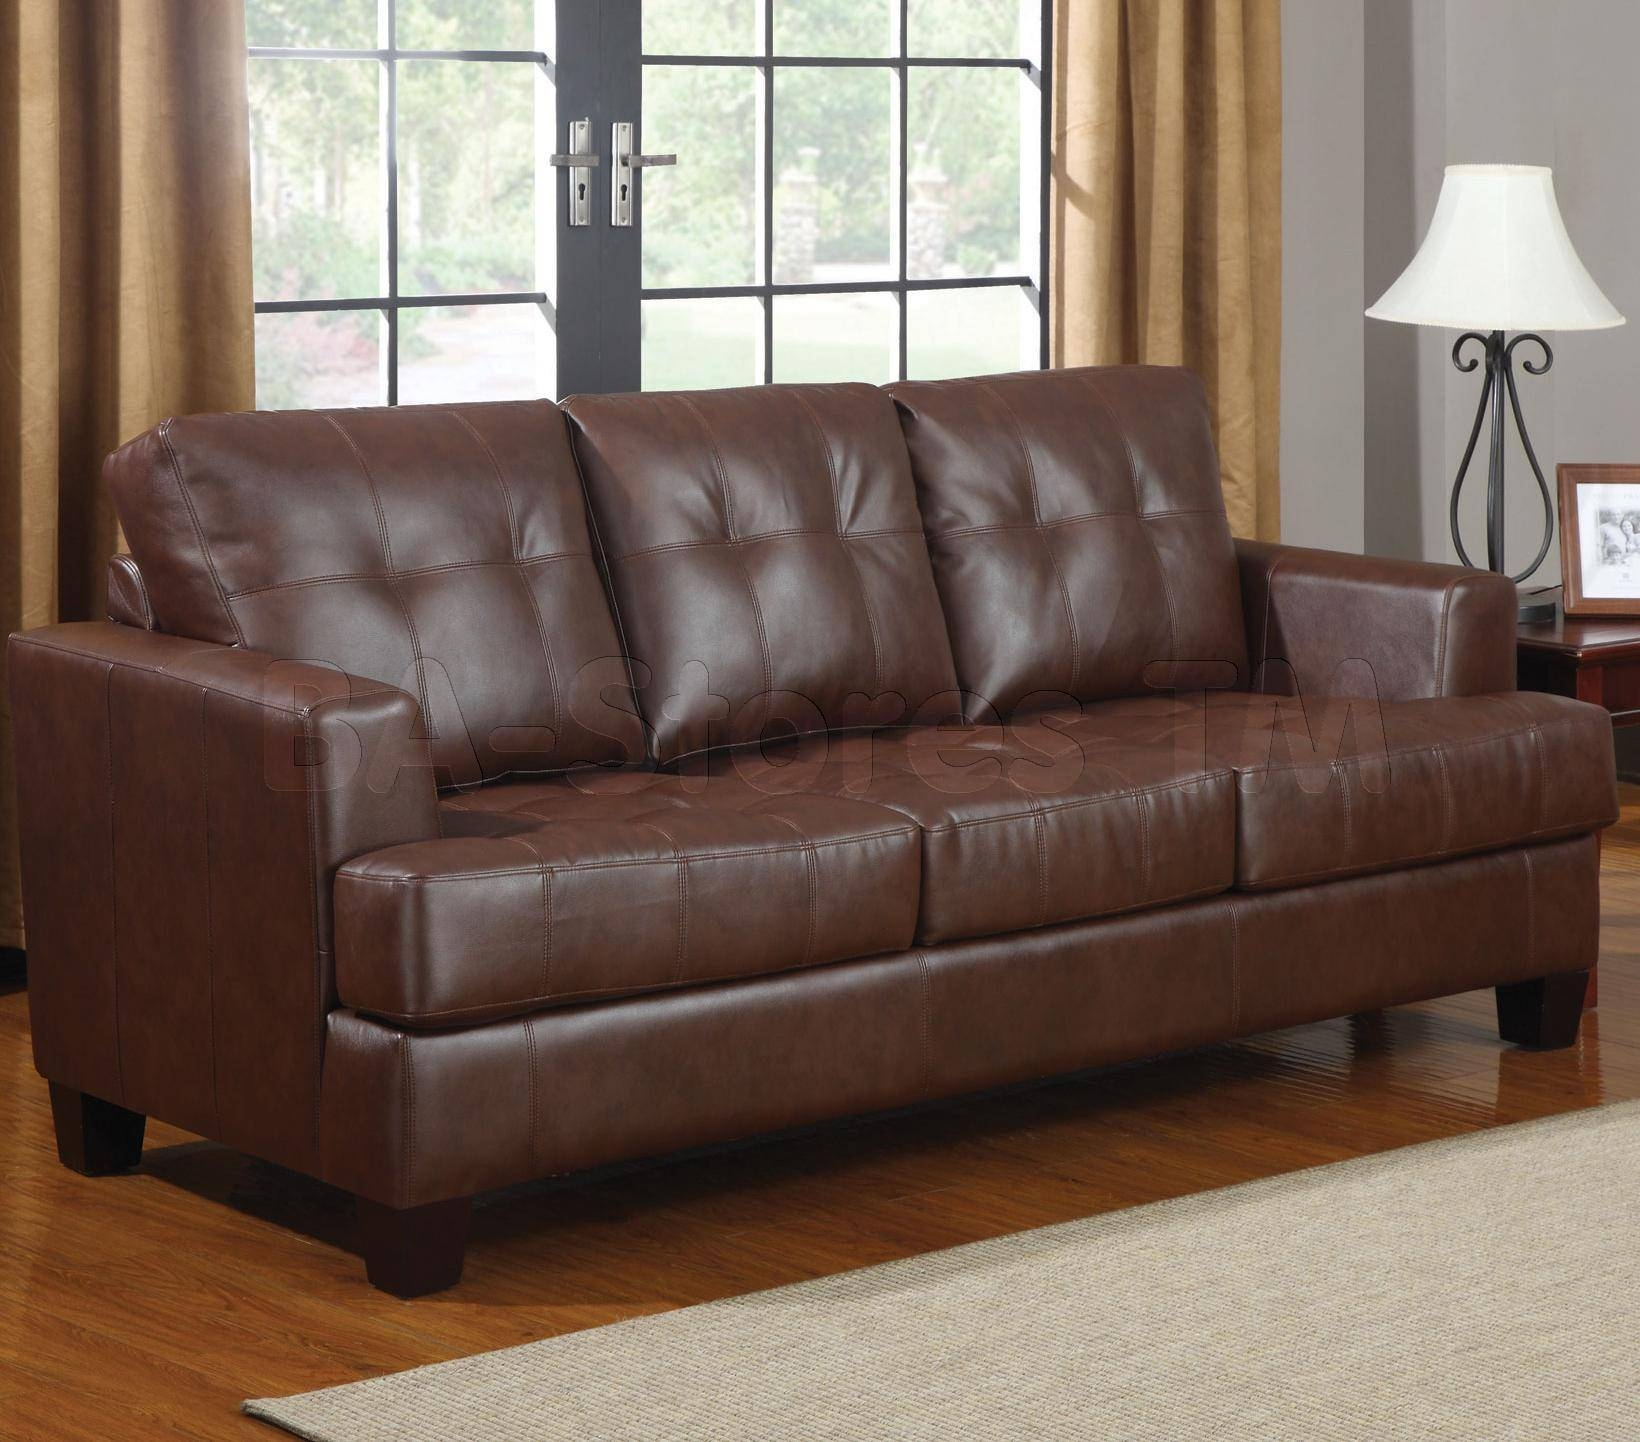 Living Room : Living Room Interior Ideas Furniture Leather Sofa for Contemporary Brown Leather Sofas (Image 12 of 15)